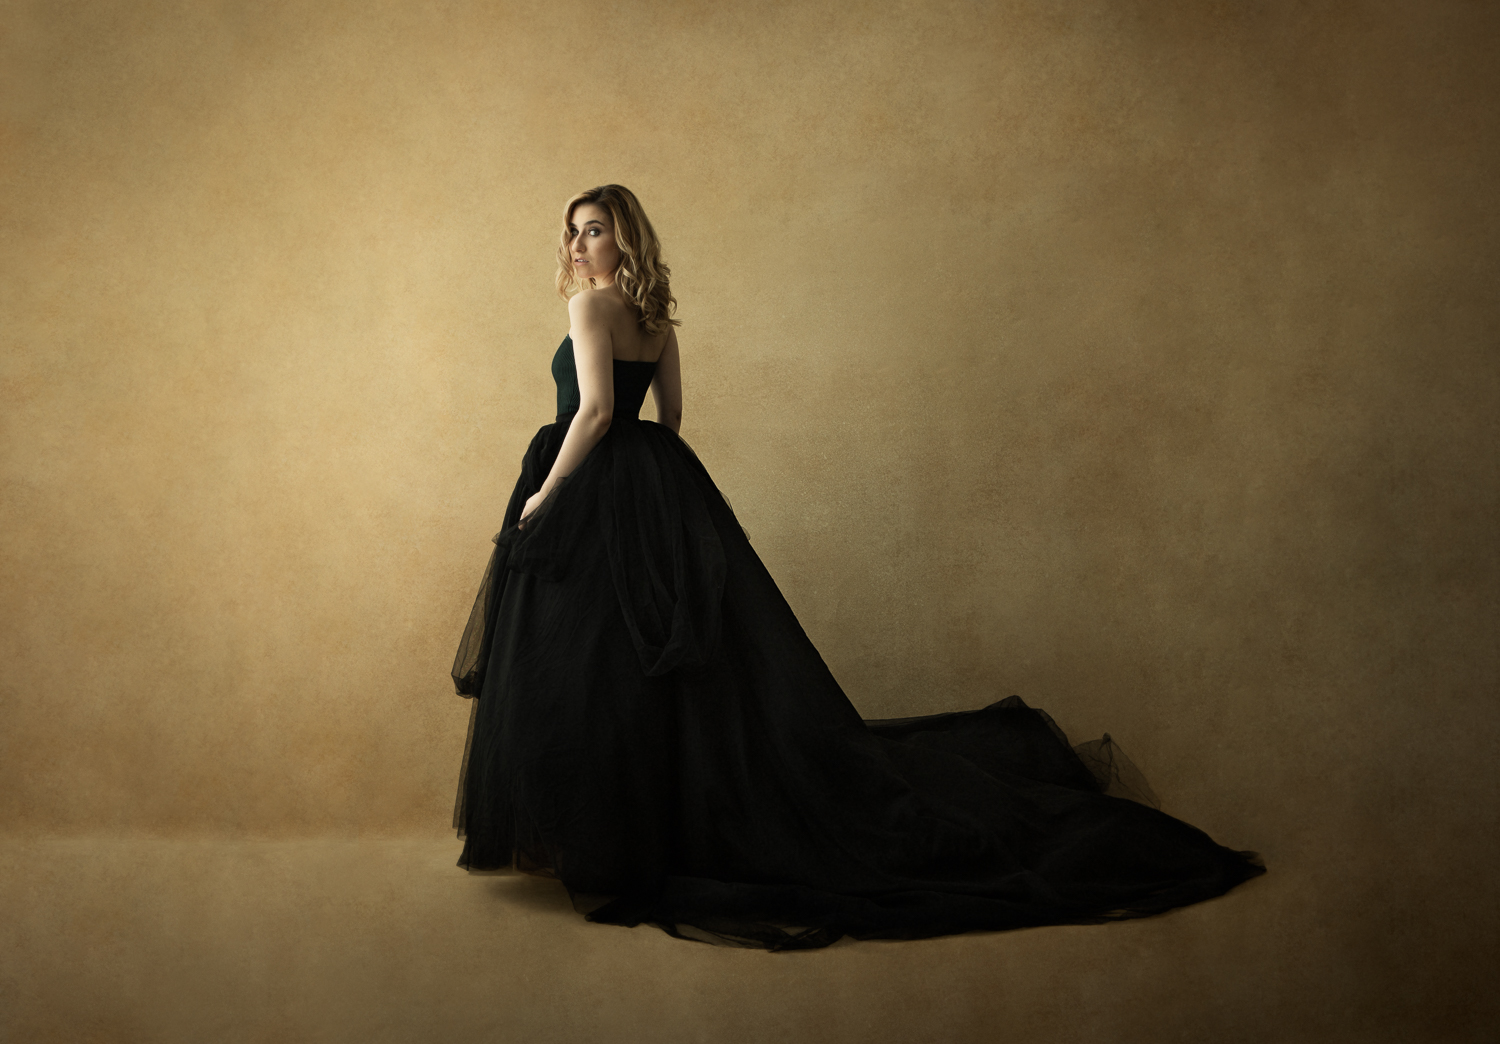 Vanity Fair style portrait of a young woman in a black gown on a gold canvas backdrop